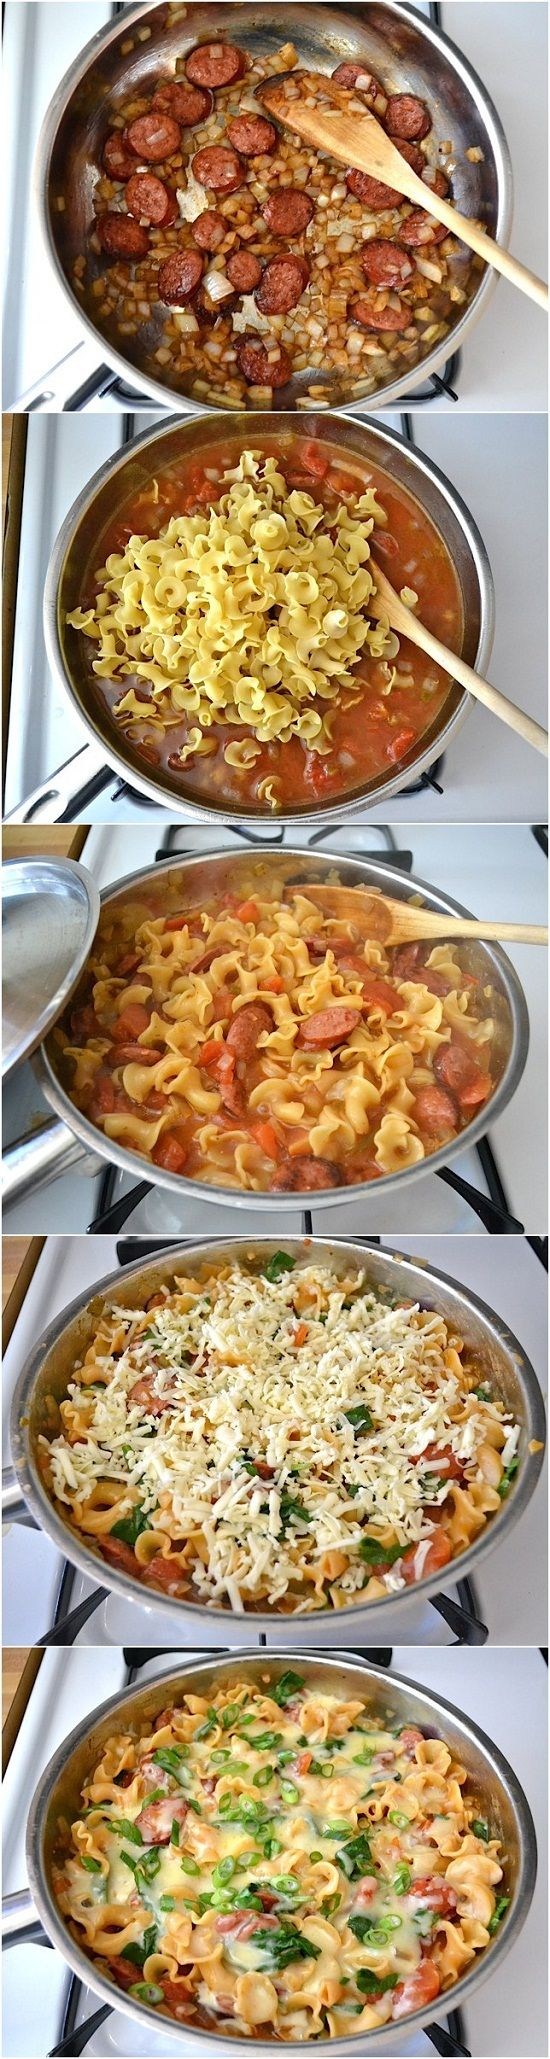 Creamy Sausage and Spinach Pasta Skillet Recipe